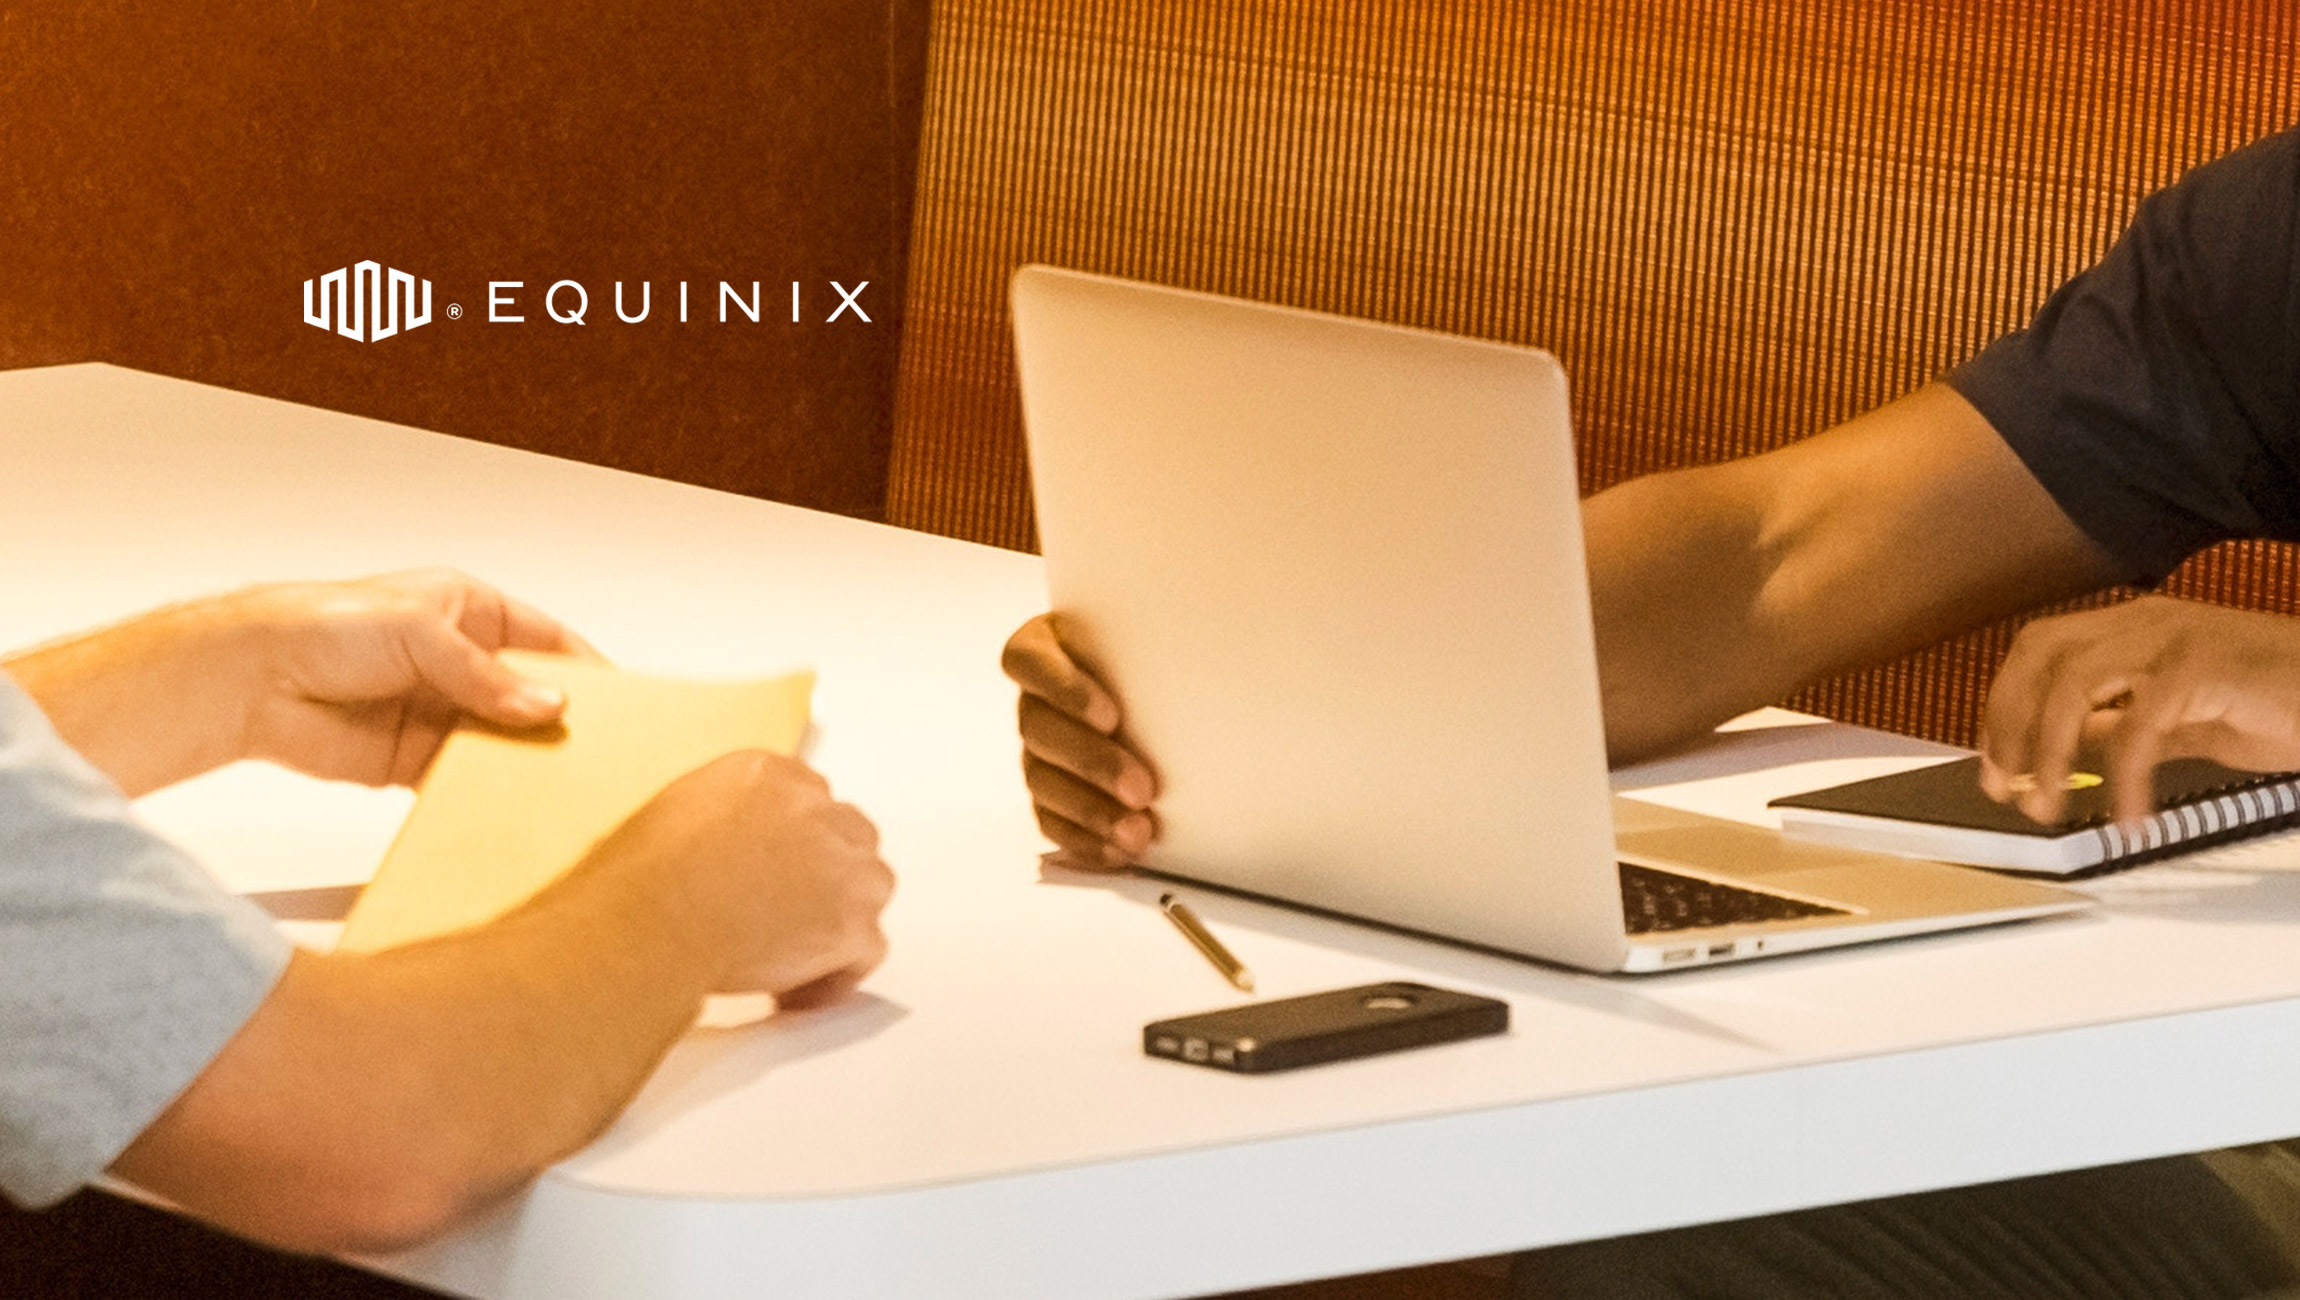 Equinix Extends Digital Edge with New Data Center in Perth